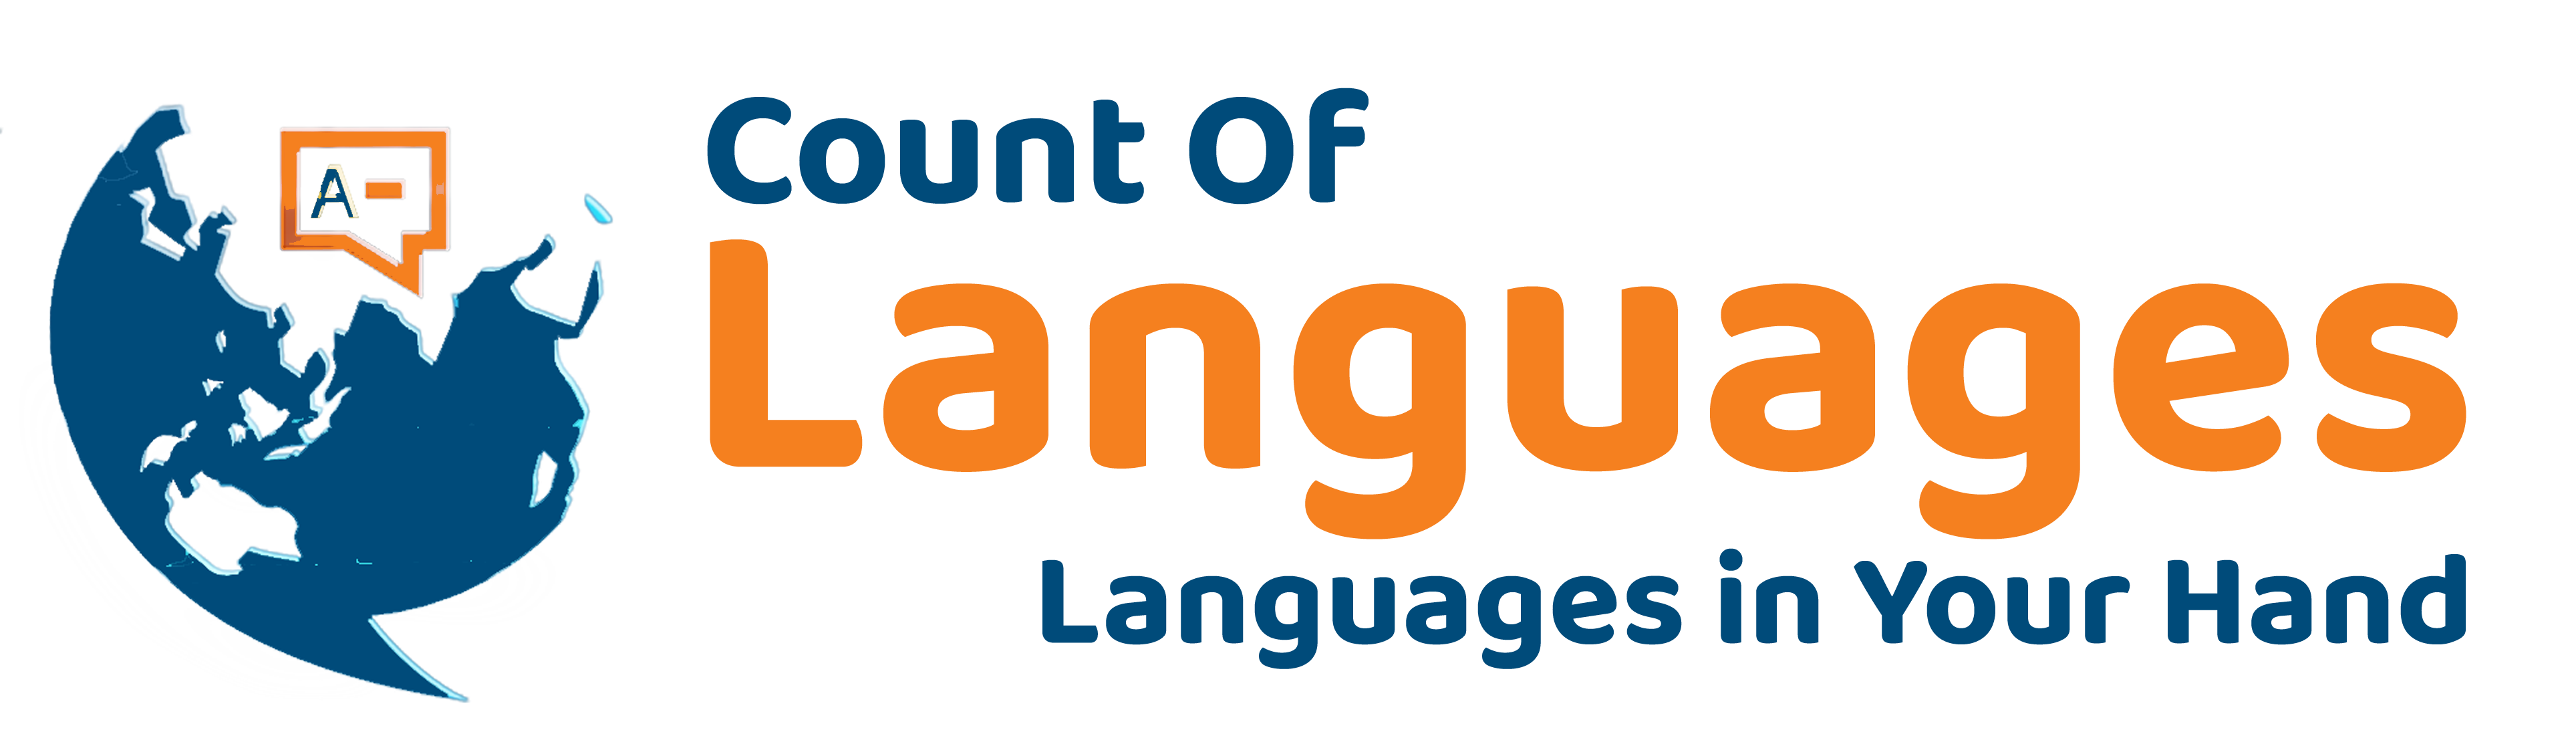 Count Of Languages